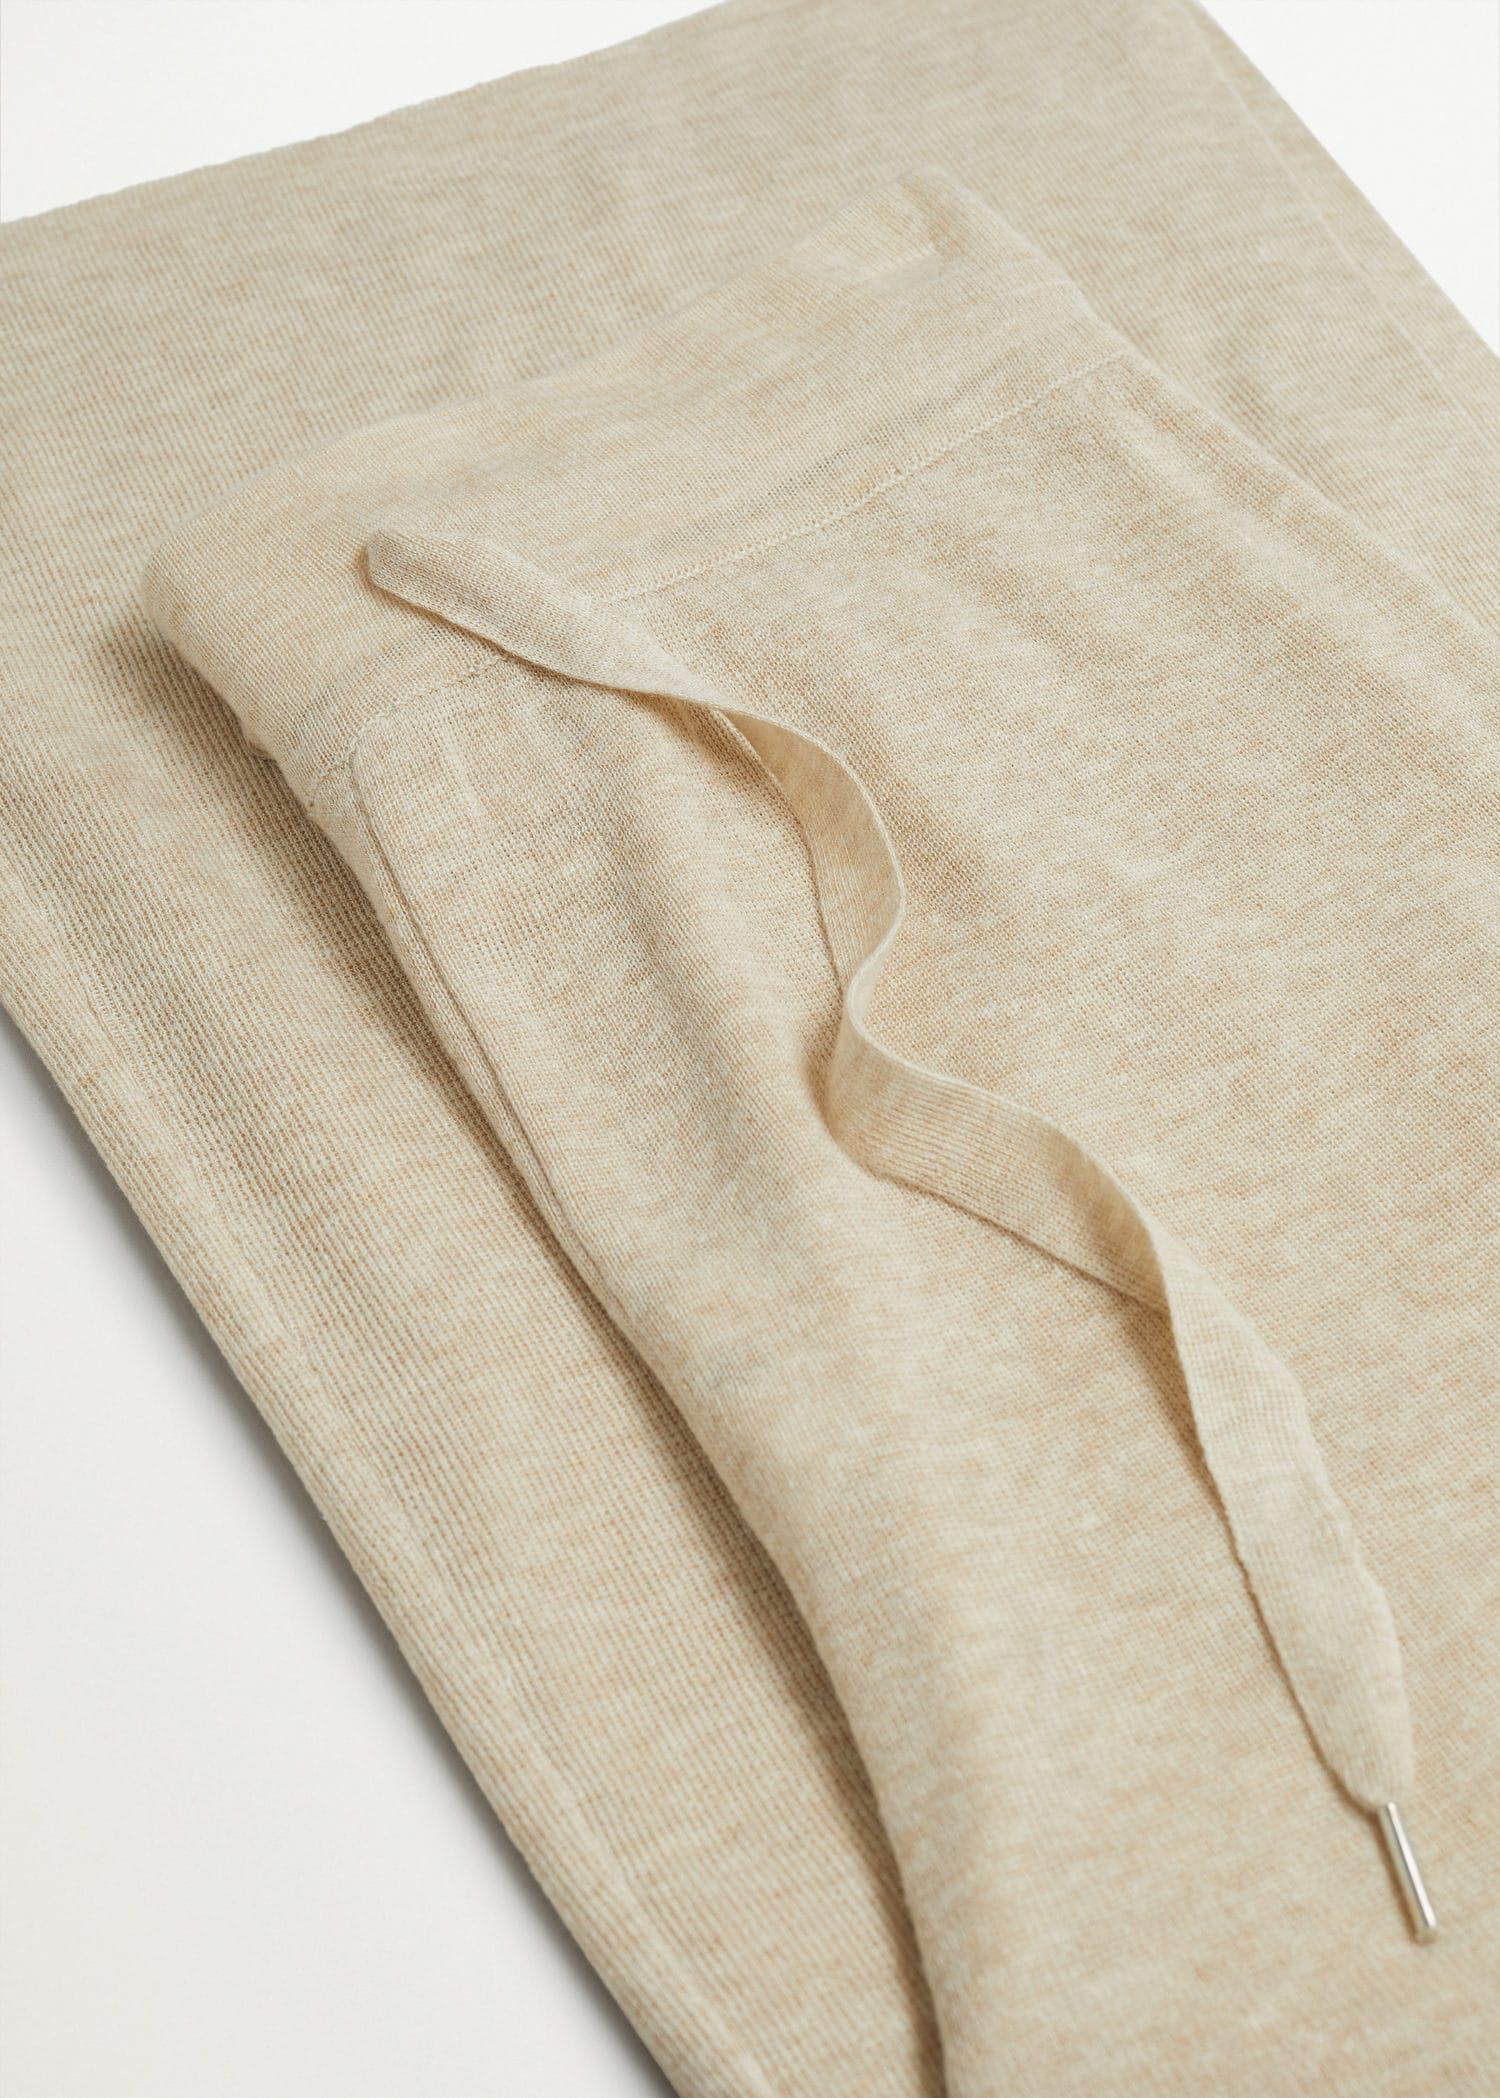 Knitted linen pants 7